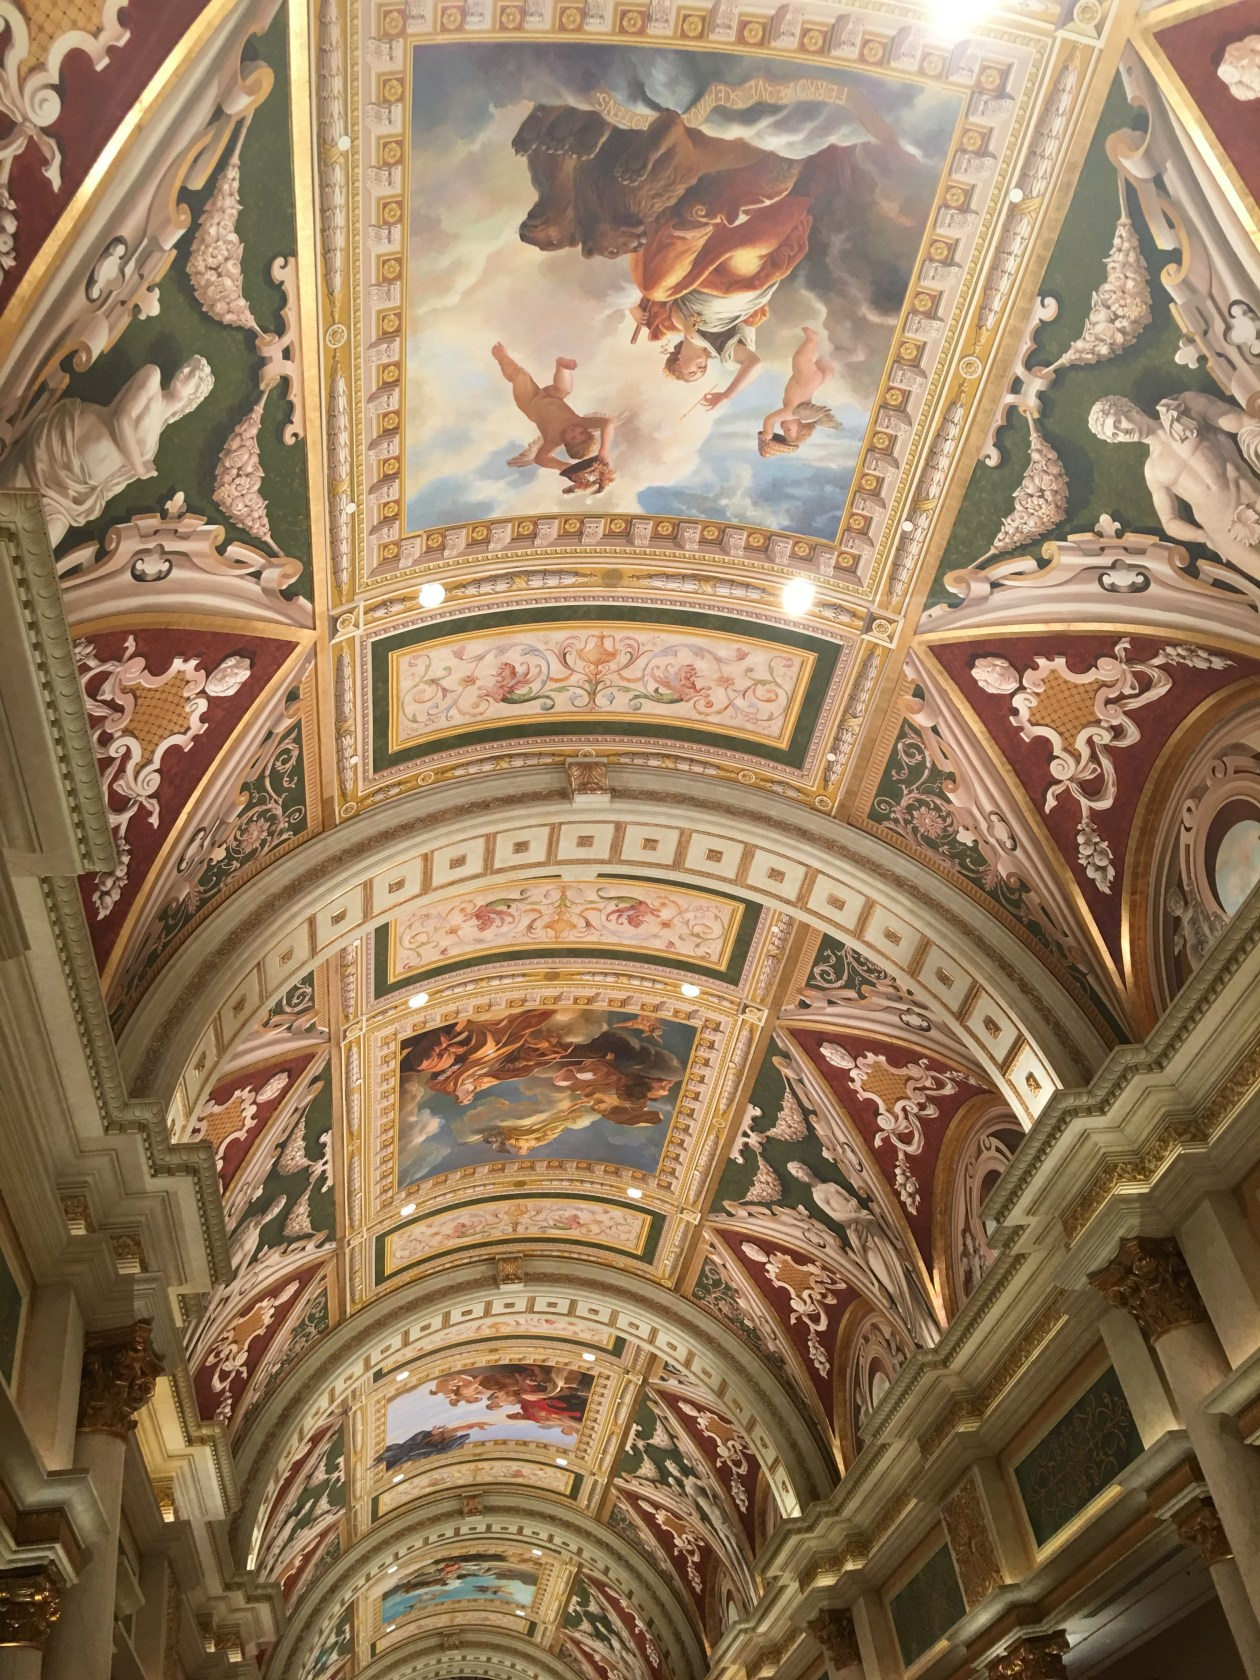 Las Vegas – The Venetian